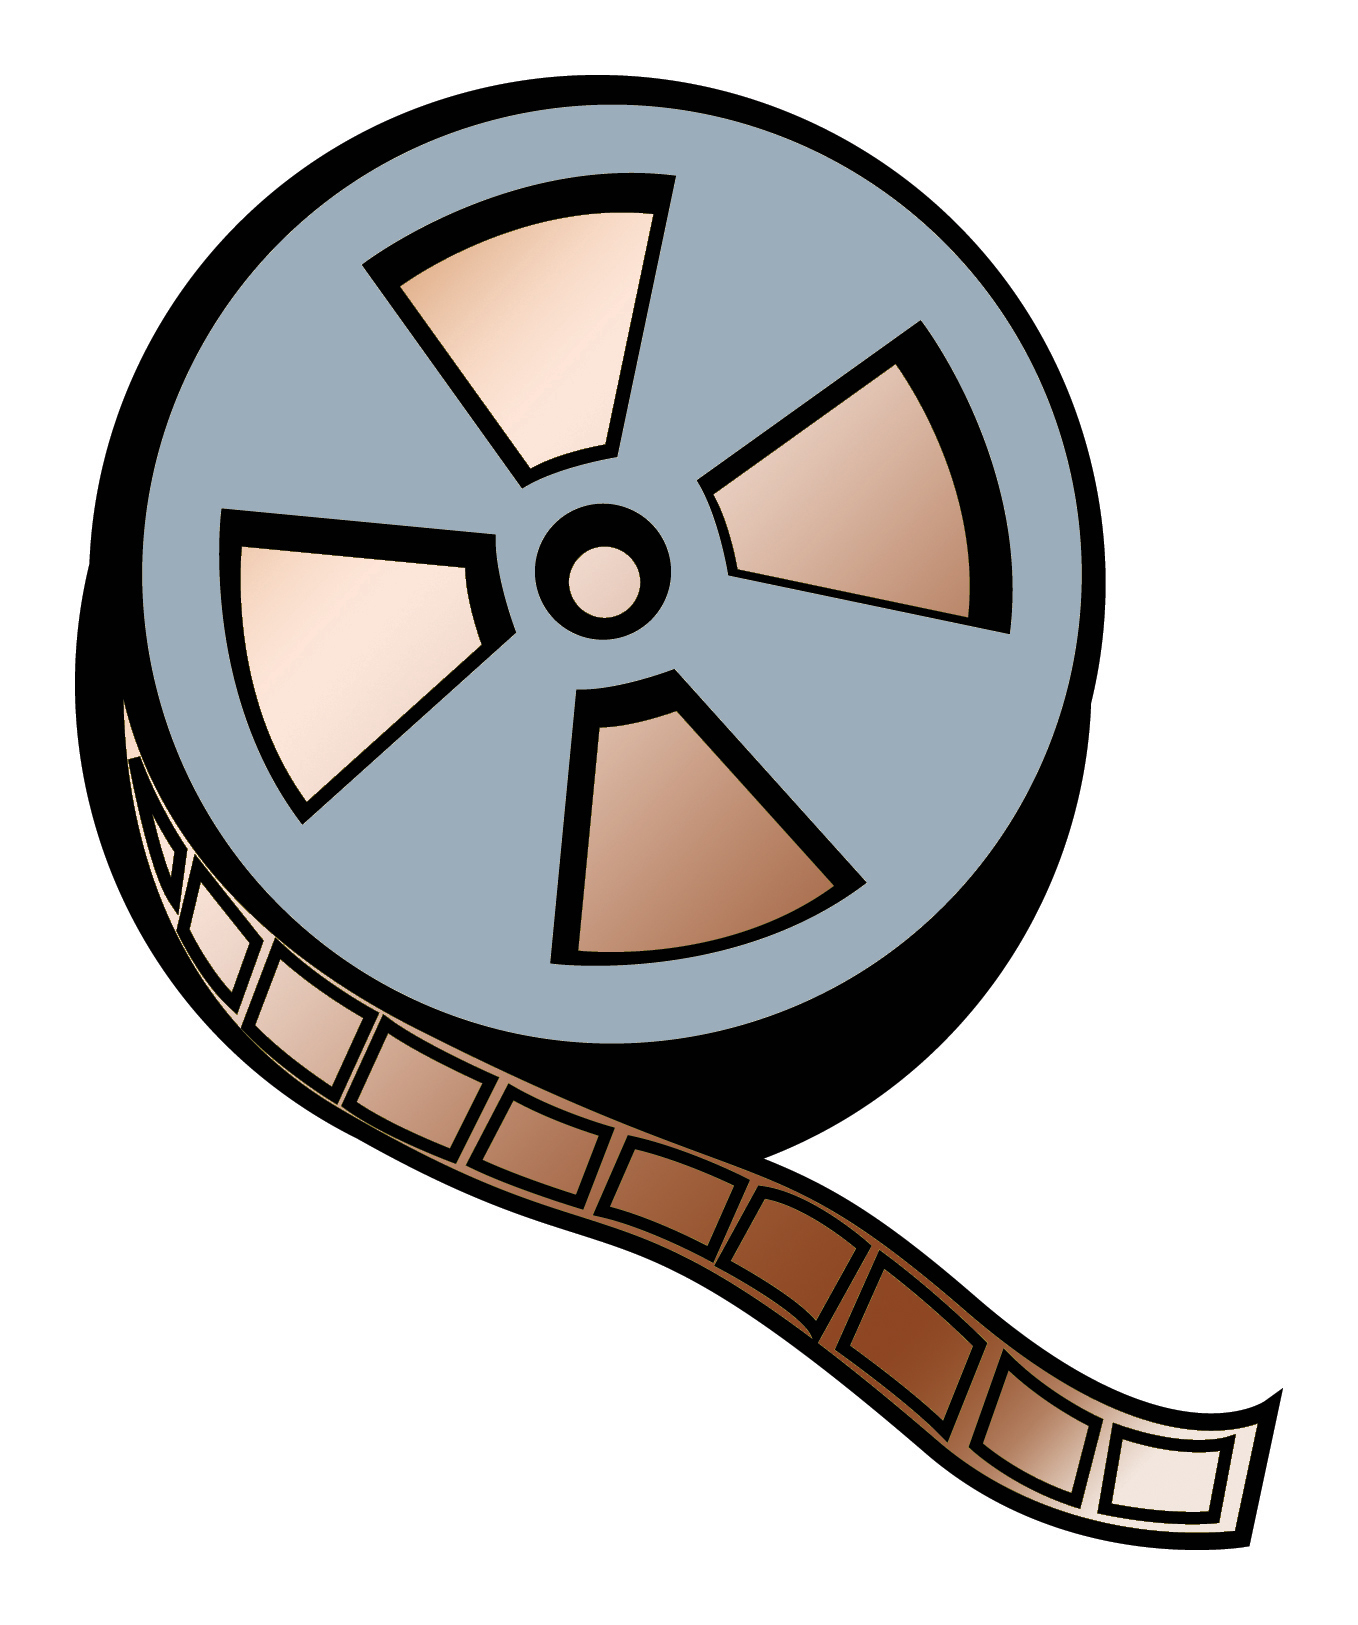 12 movie reel vector free cliparts that you can download to you ...